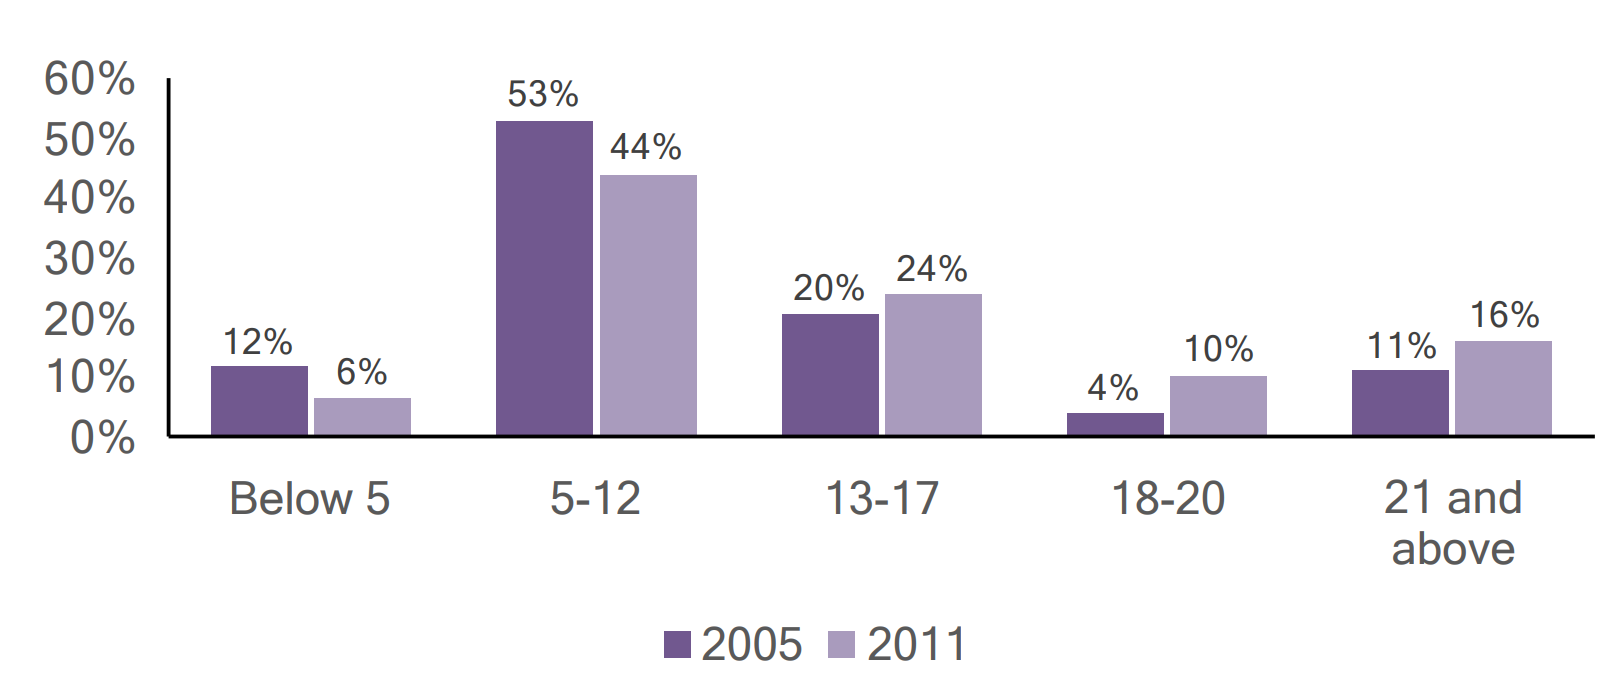 Bar graph of individuals with autism in Dauphin county by age, comparing 2005 and 2011 data.